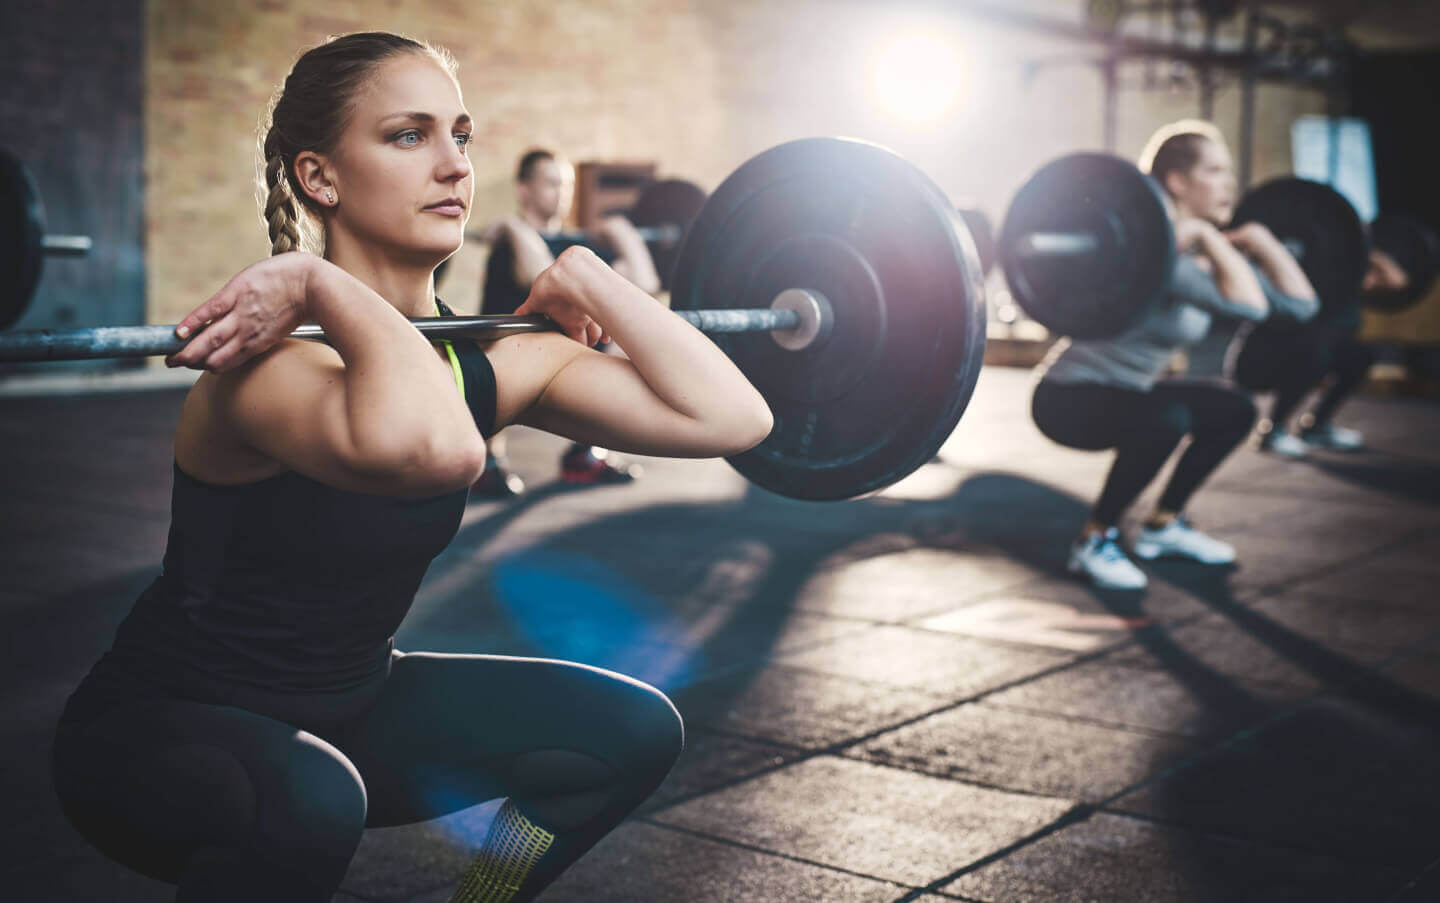 Do different muscle group need to be trained differently?